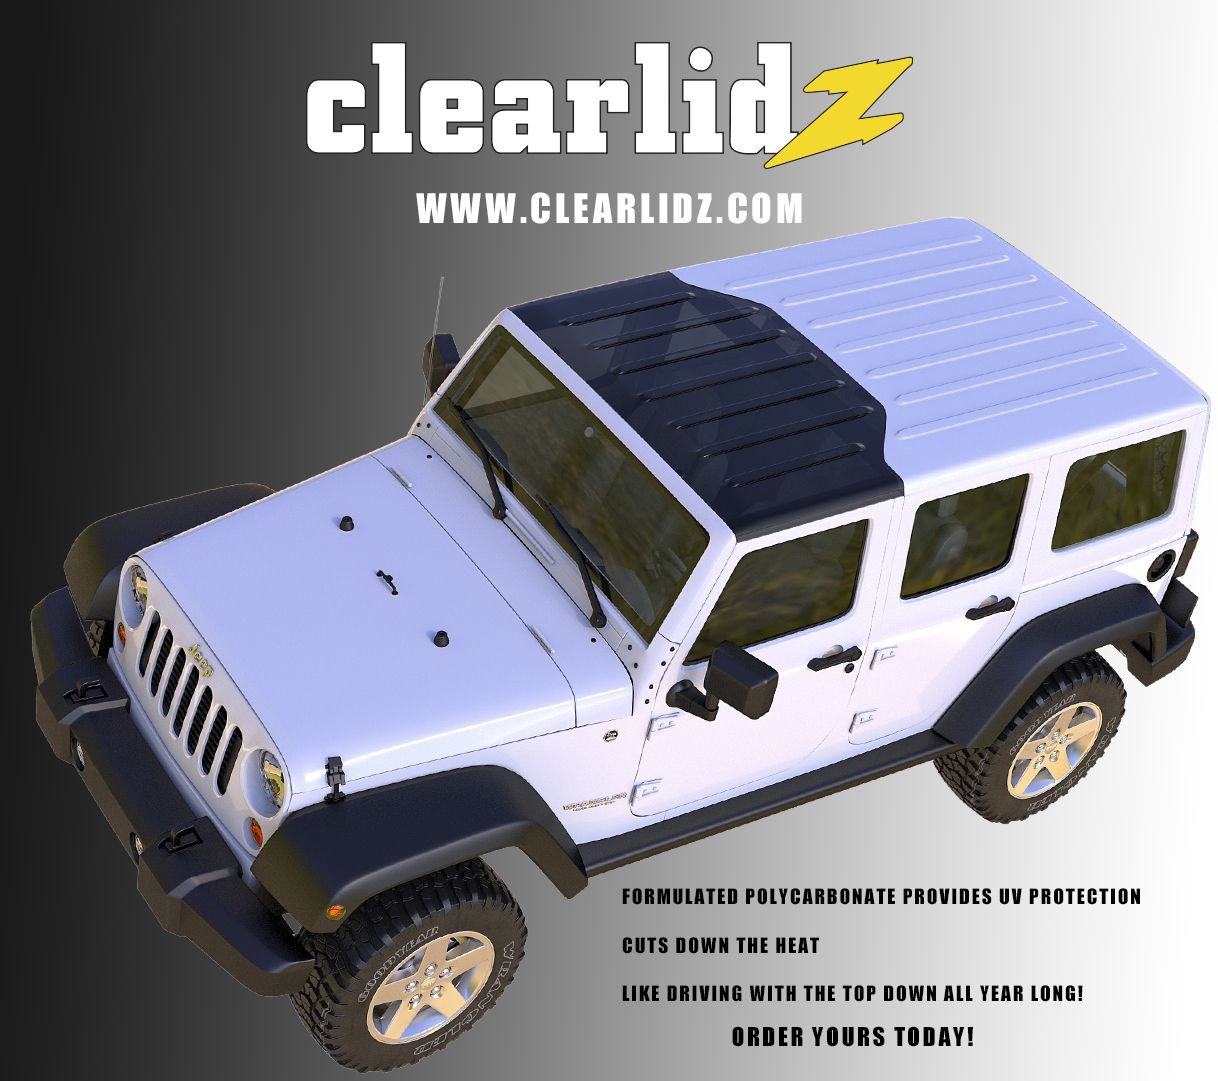 Clear Jeep Jk Hard Top Clear Jeep Shade Top Clearlidz Jeep Wrangler Panoramic Freedom Top Jeep Tops Jeep Tops Jeep Wrangler Hard Top Jeep Wrangler